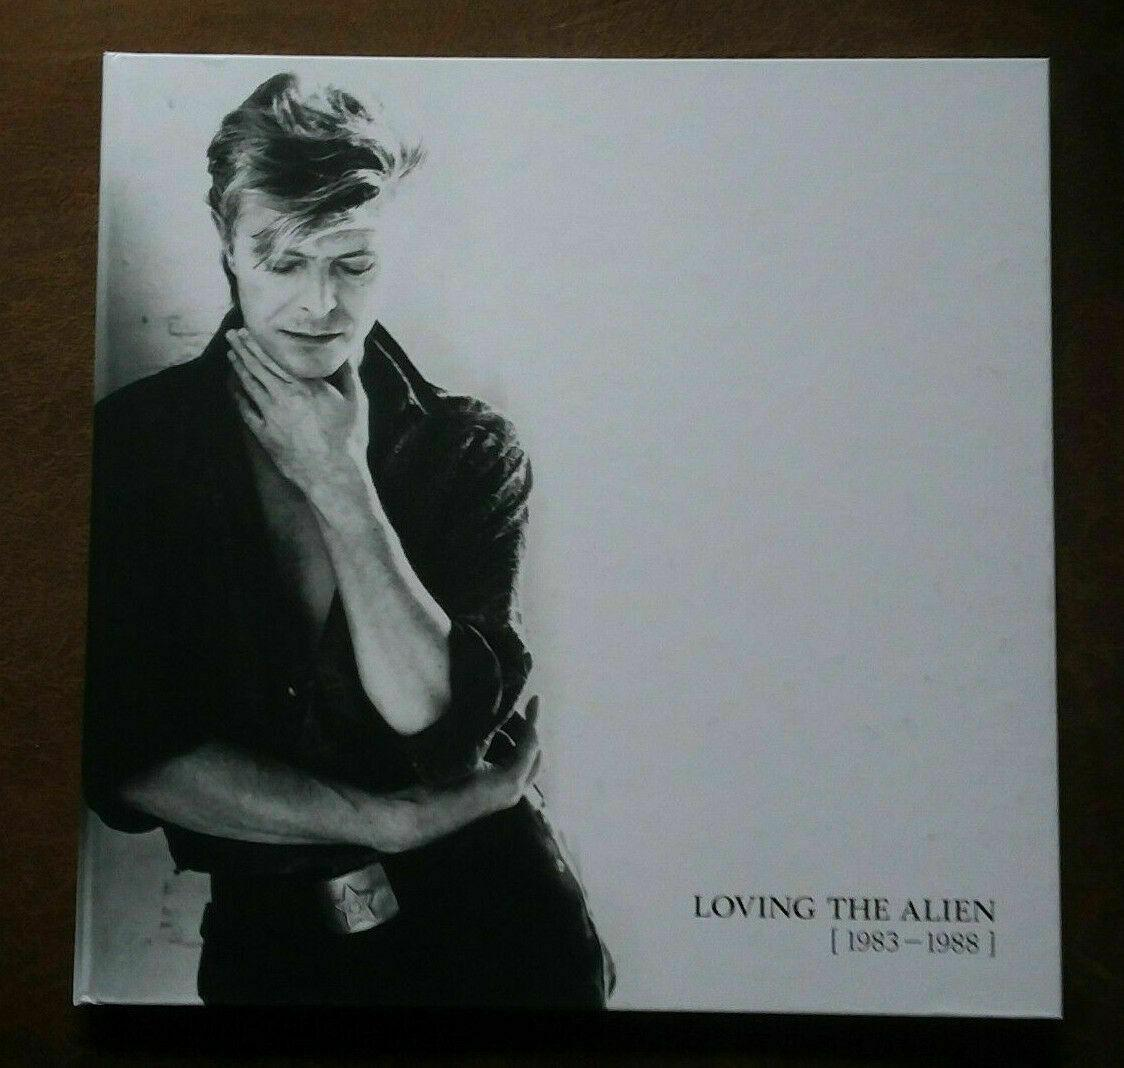 DAVID BOWIE - BOOK ONLY from VINYL Loving The Alien (1983-1988) BOX SET No Music